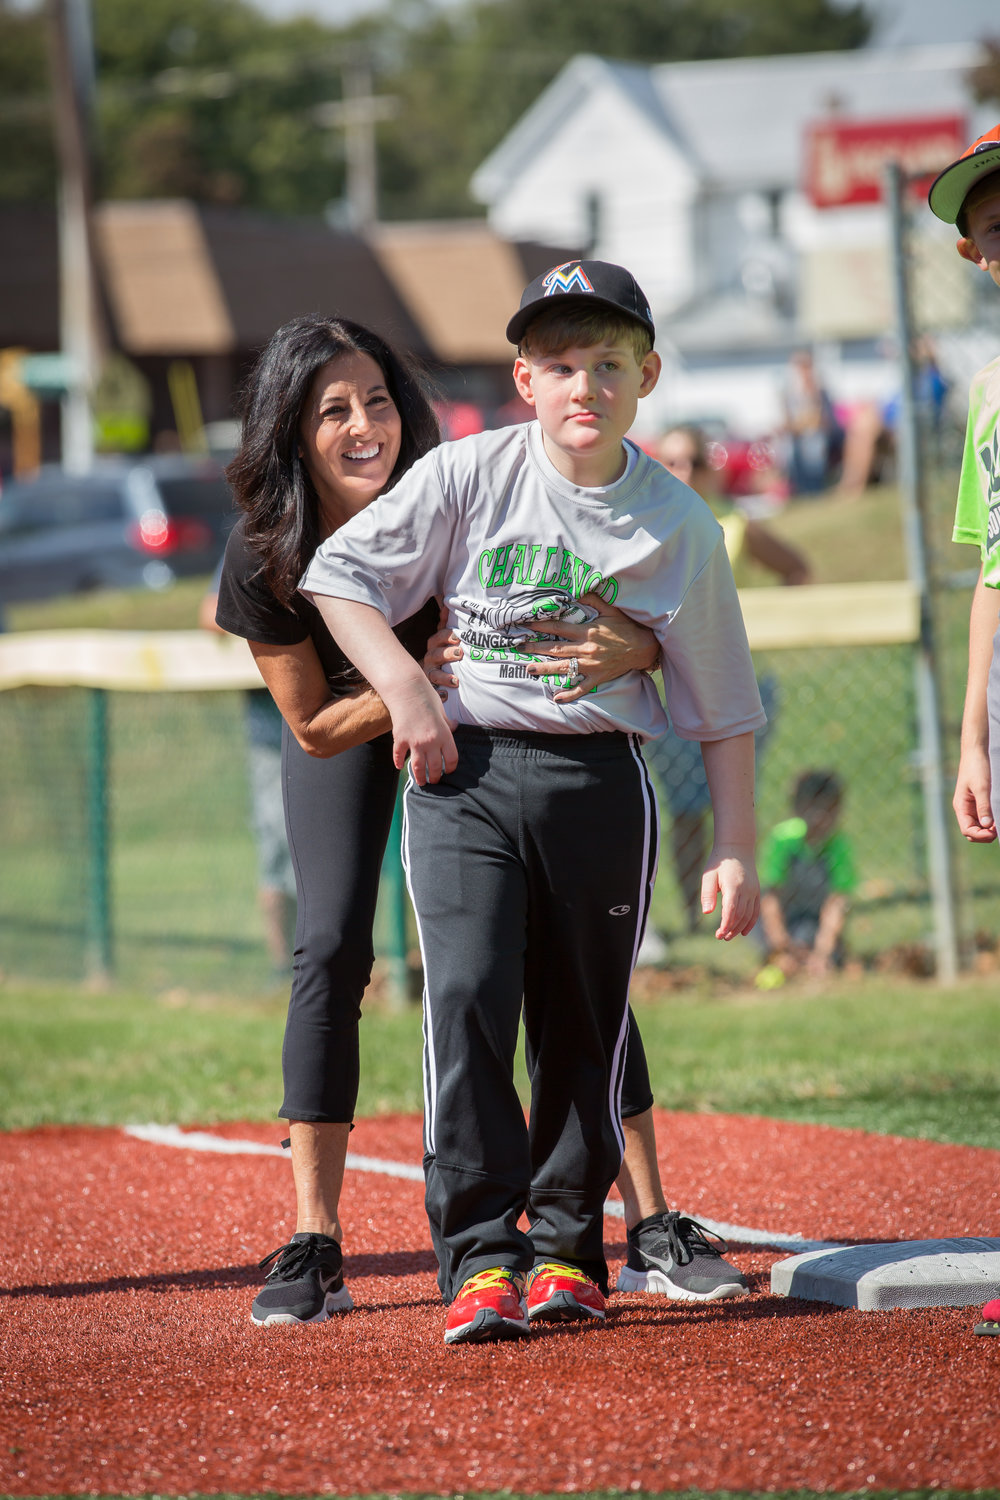 Challenger League Mattingly Charities 44 10-9-16.jpg